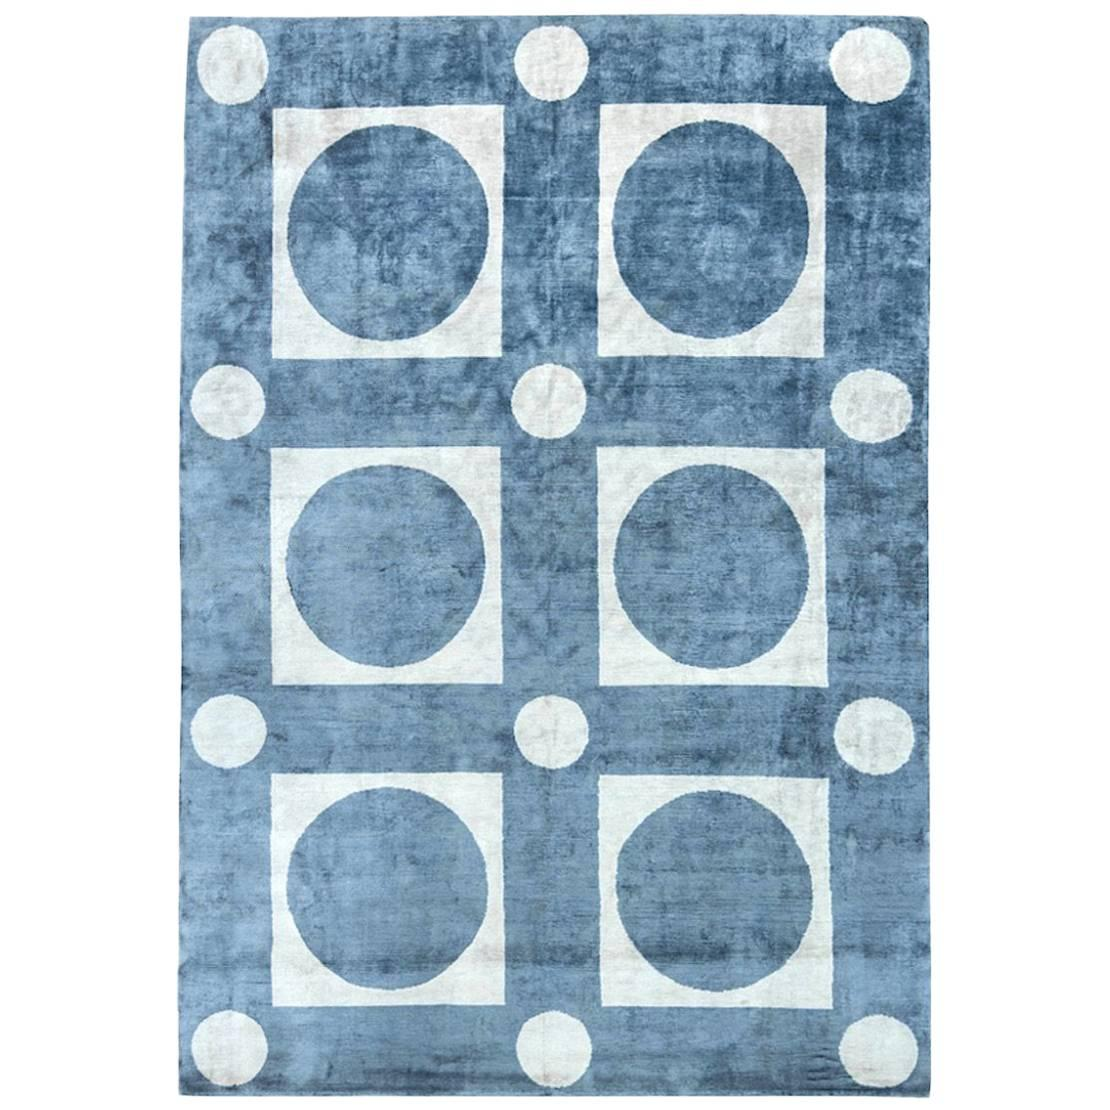 Contemporary Hand-Knotted Silk Tibetan-Inspired Area Rug